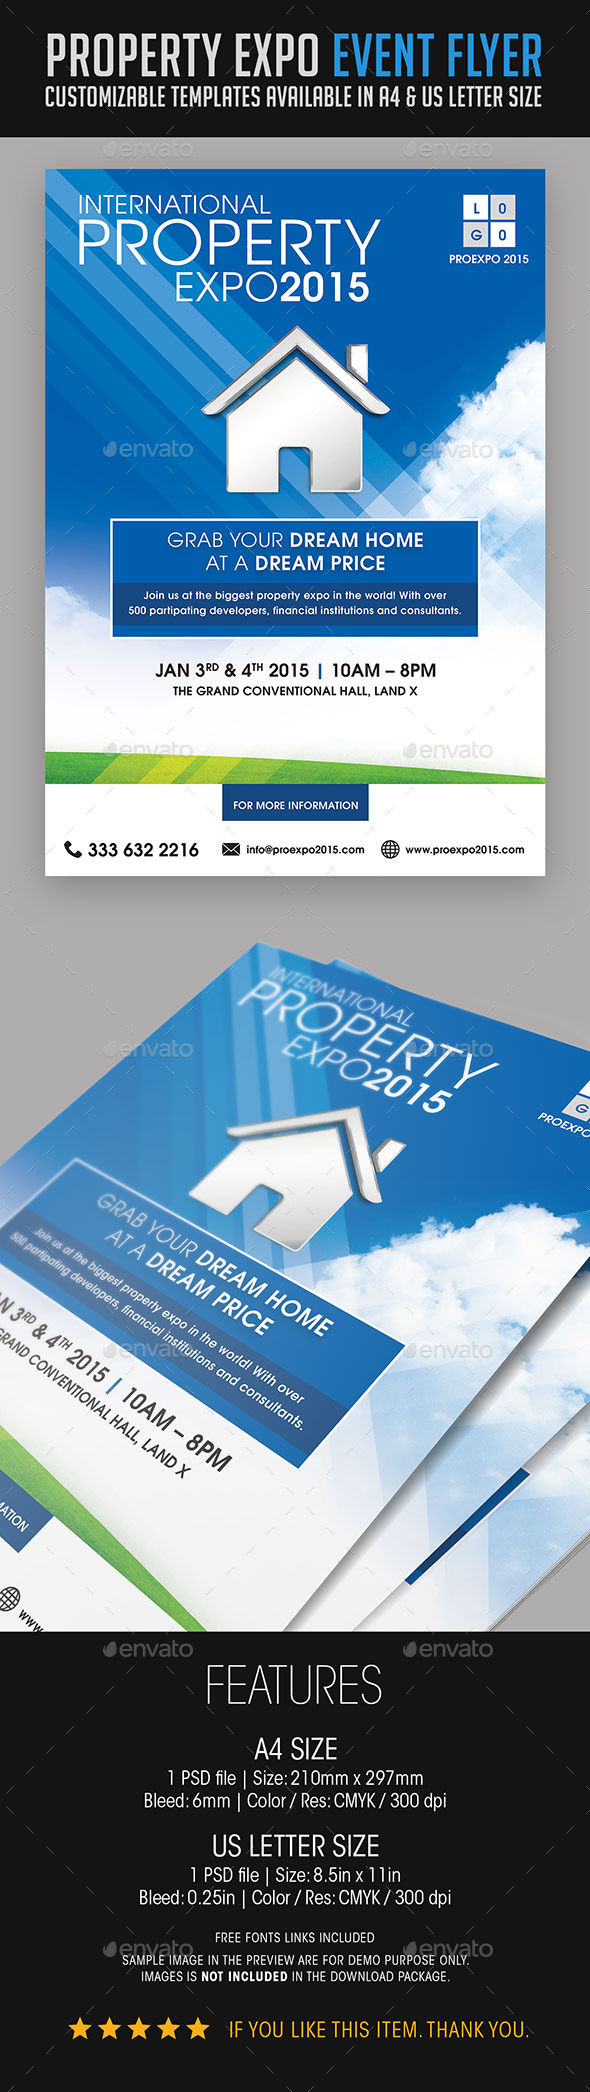 Property Expo Event Flyer - Events Flyers